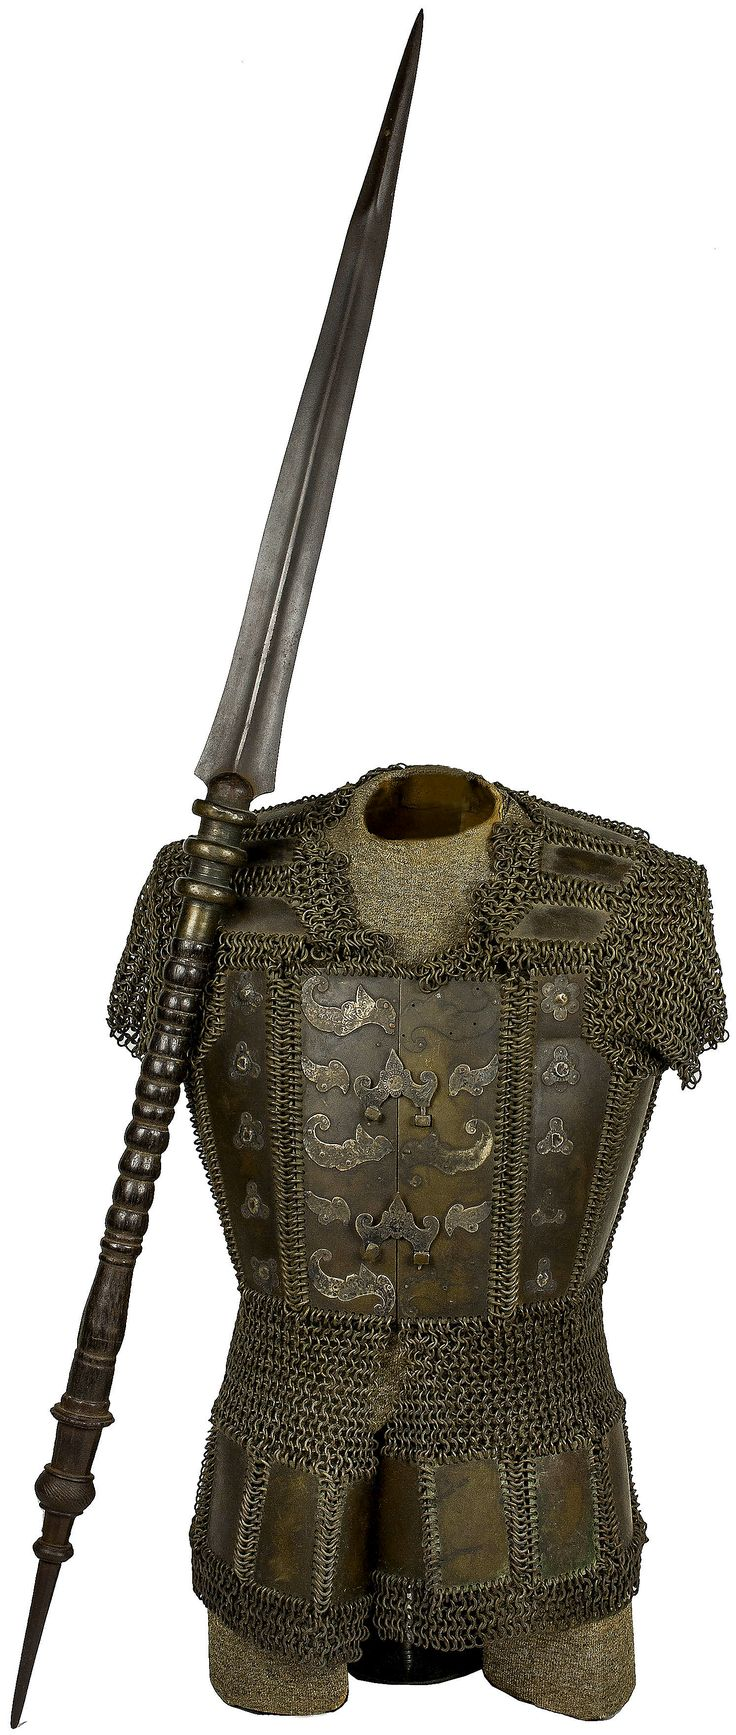 "Moro (Philippine) brass mail and plate cuirass, 19th century,  with Moro Spear, complete with bosses and metal furniture attached to the breastplate with two functional fasteners, back of the cuirass with scaled metal plates. Blade is 23"" and overall length 51.5"". Wood handle trimmed in brass with spiral design."